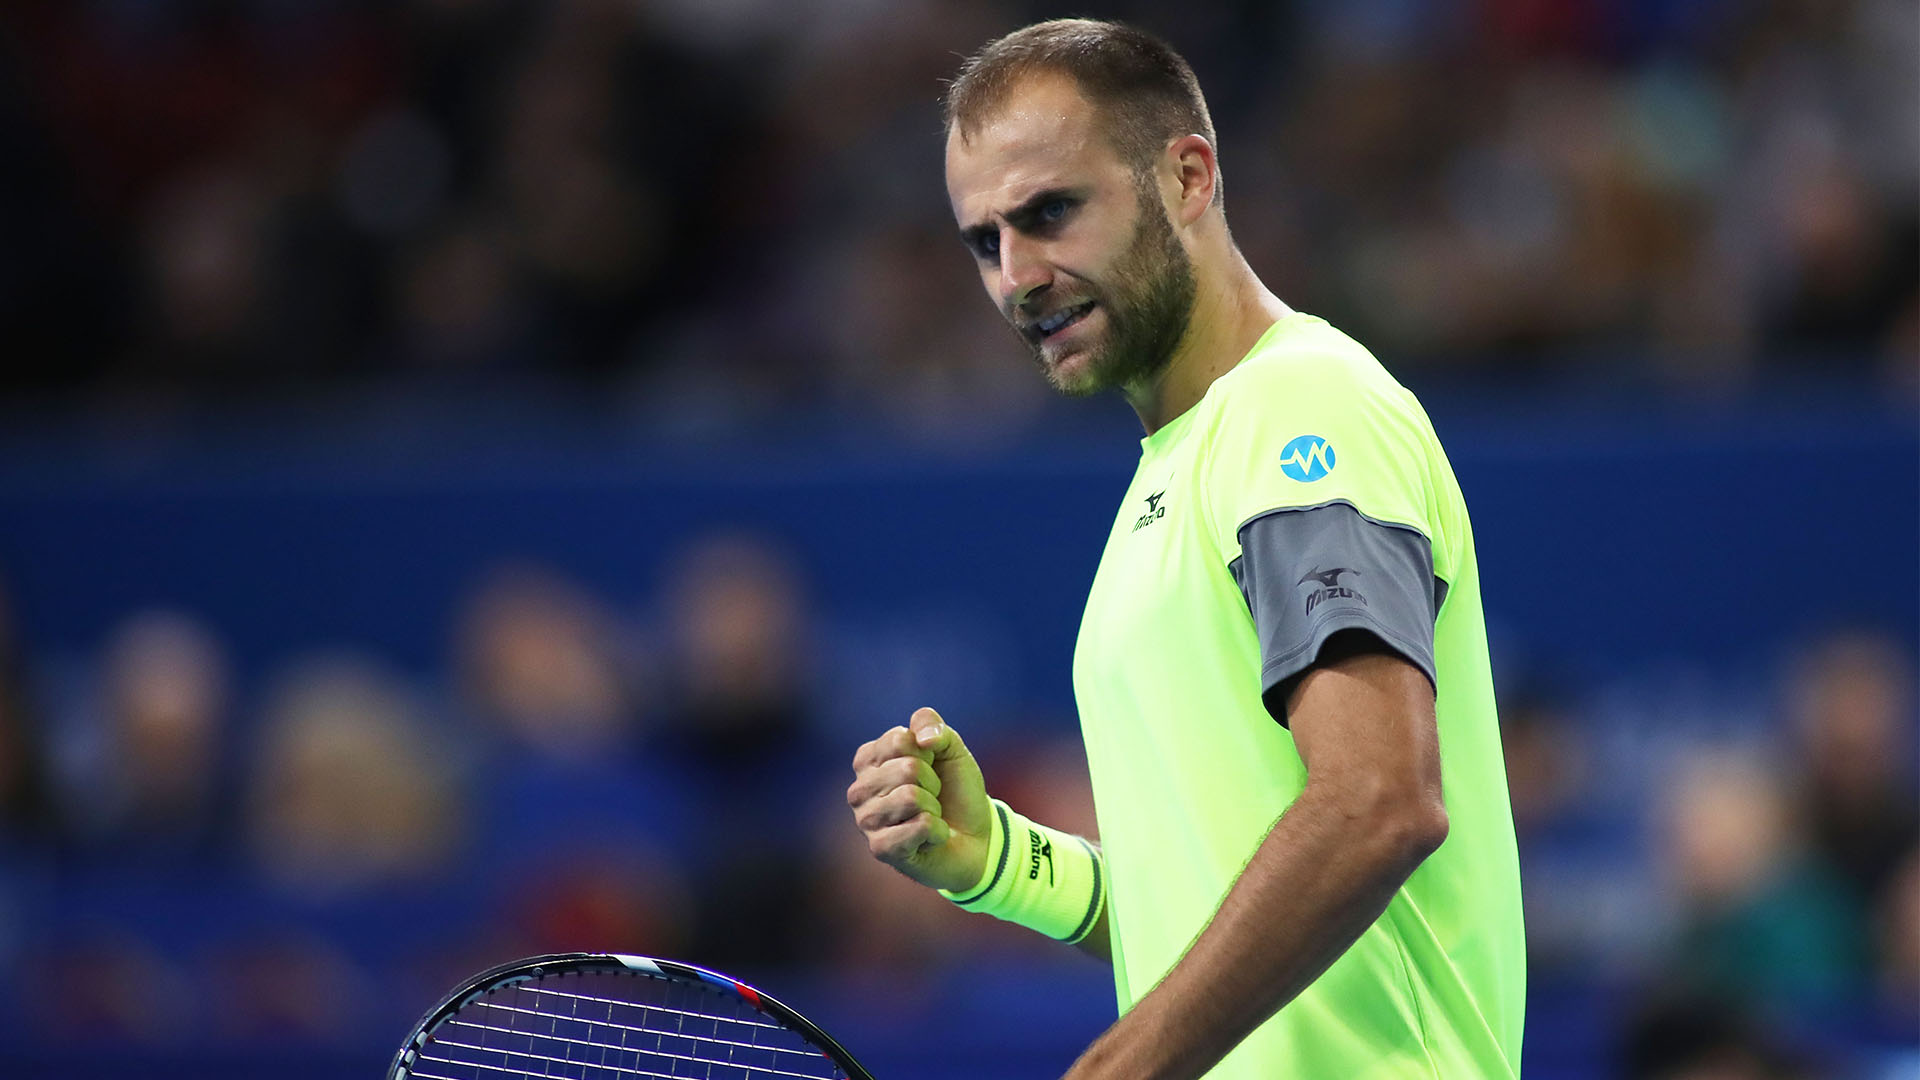 Marius Copil, ATP final